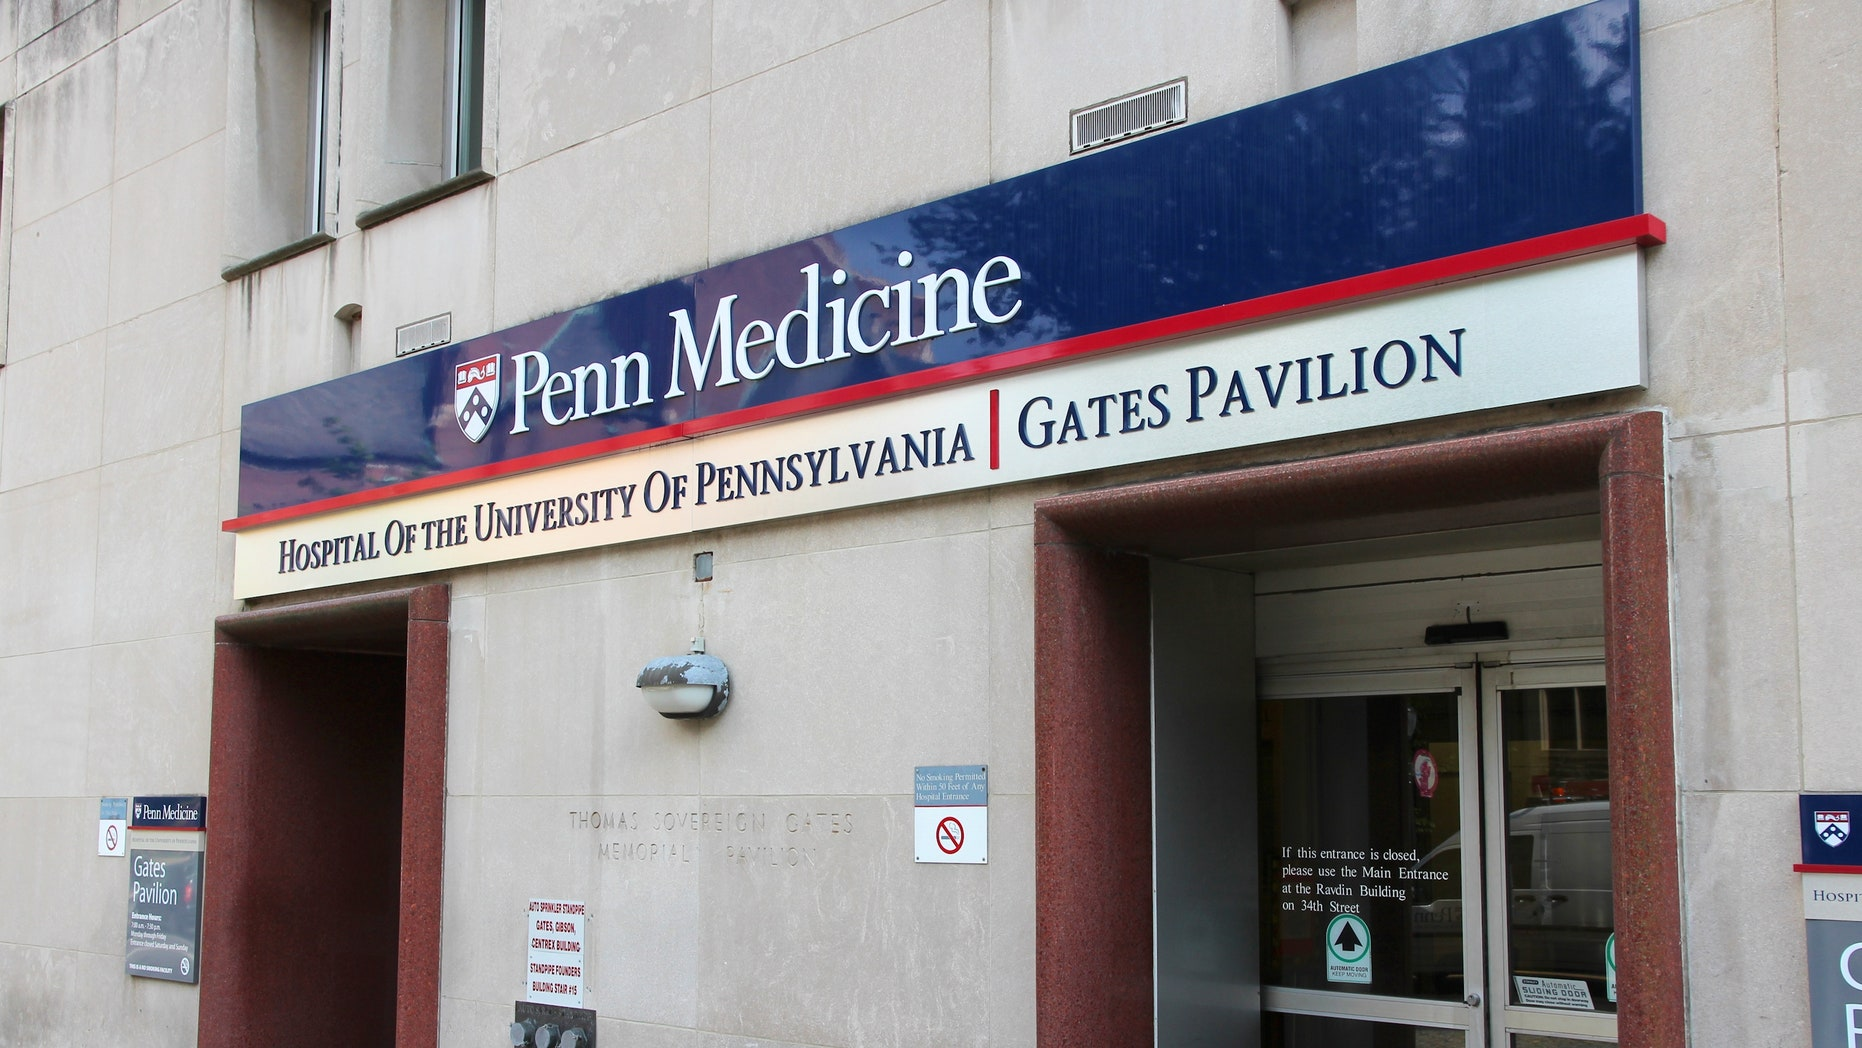 Penn Medicine says preliminary testing at the Hospital of the University of Pennsylvania indicates the person has another condition.